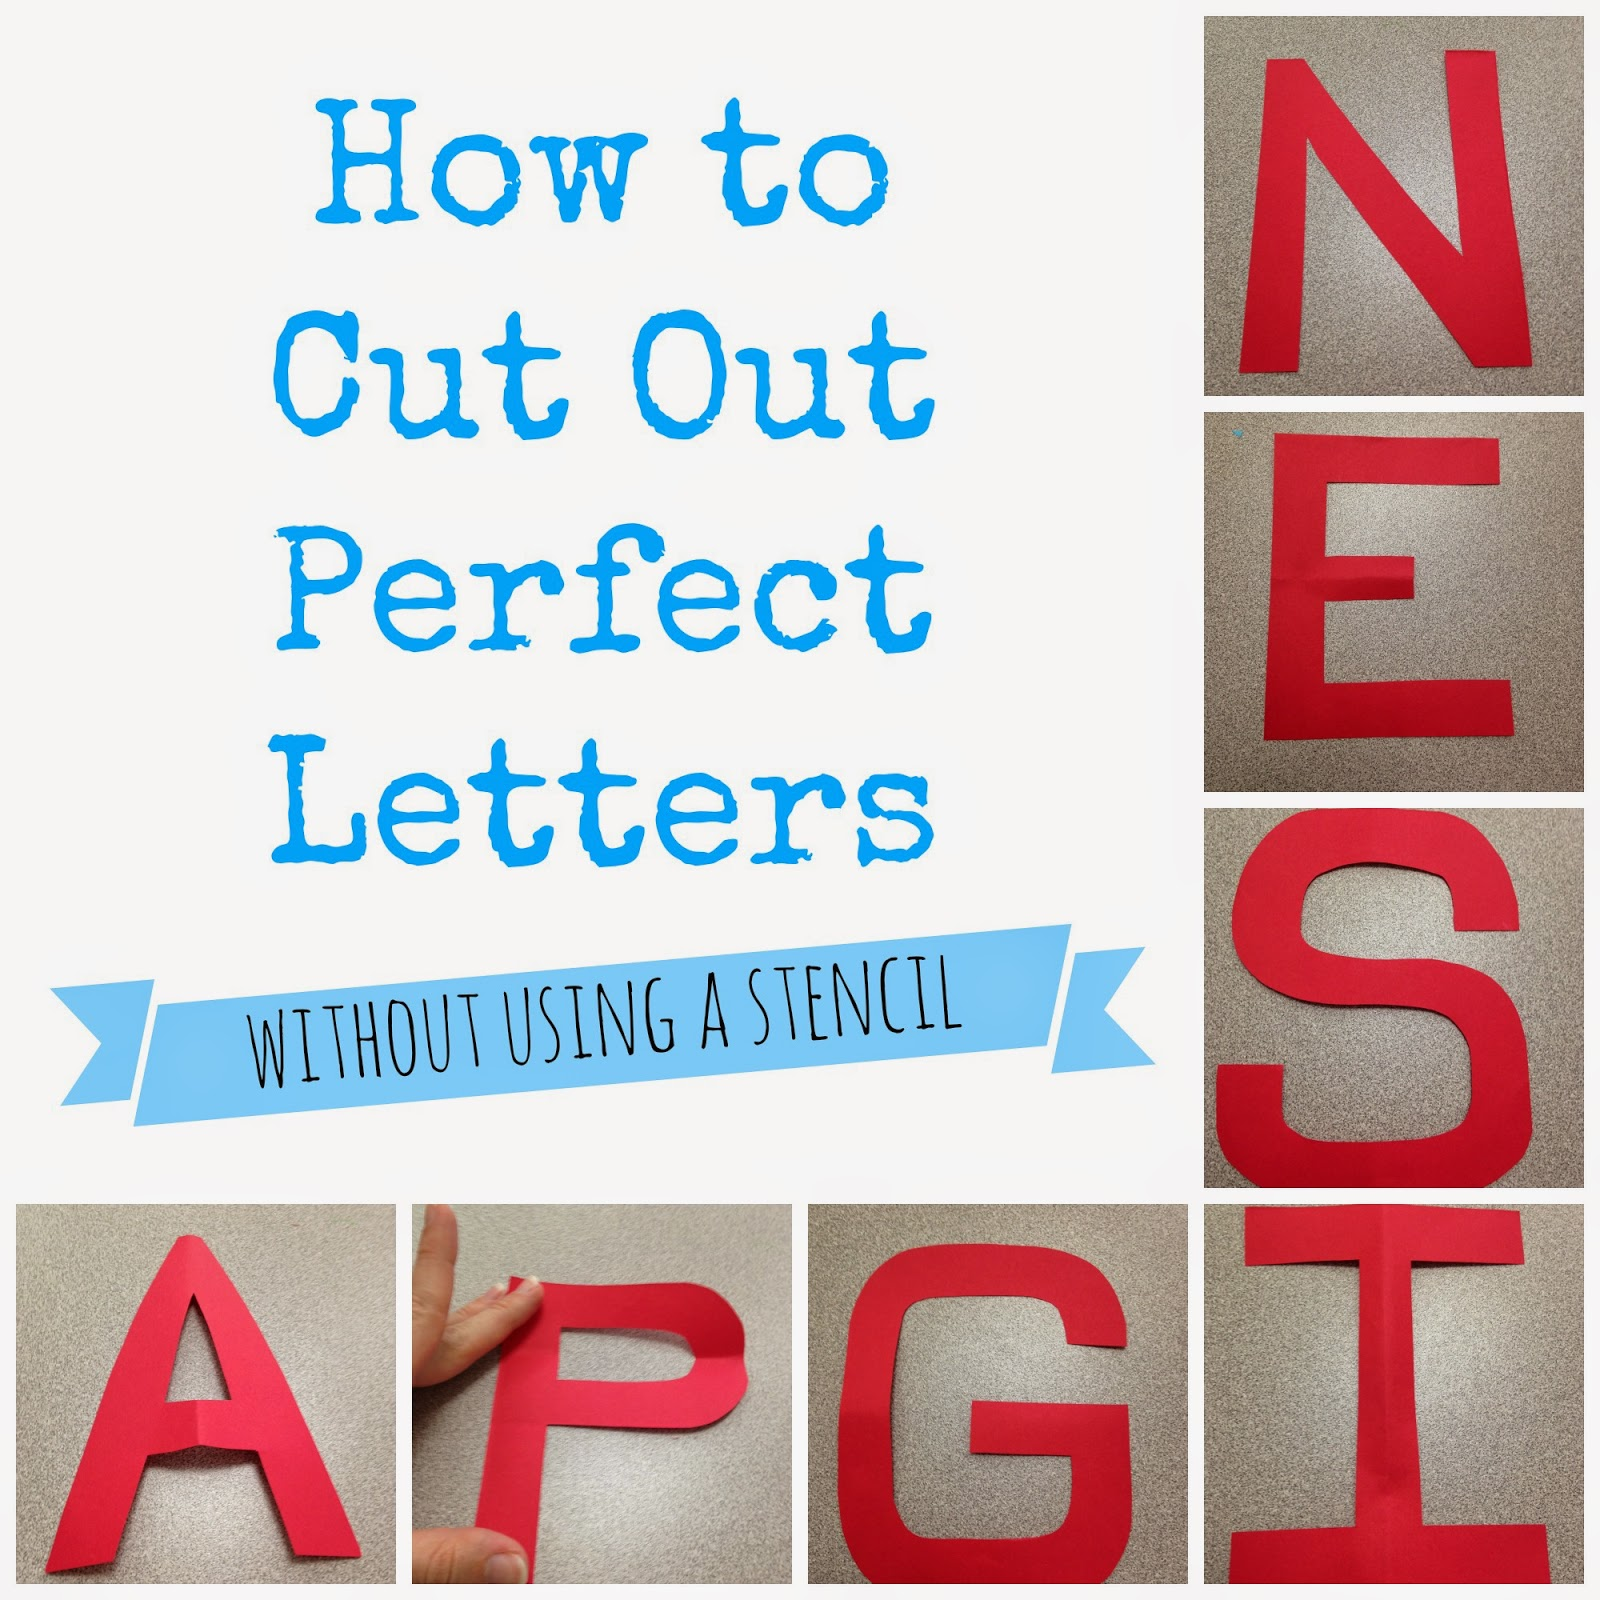 The Morgan S How To Cut Out Perfect Letters